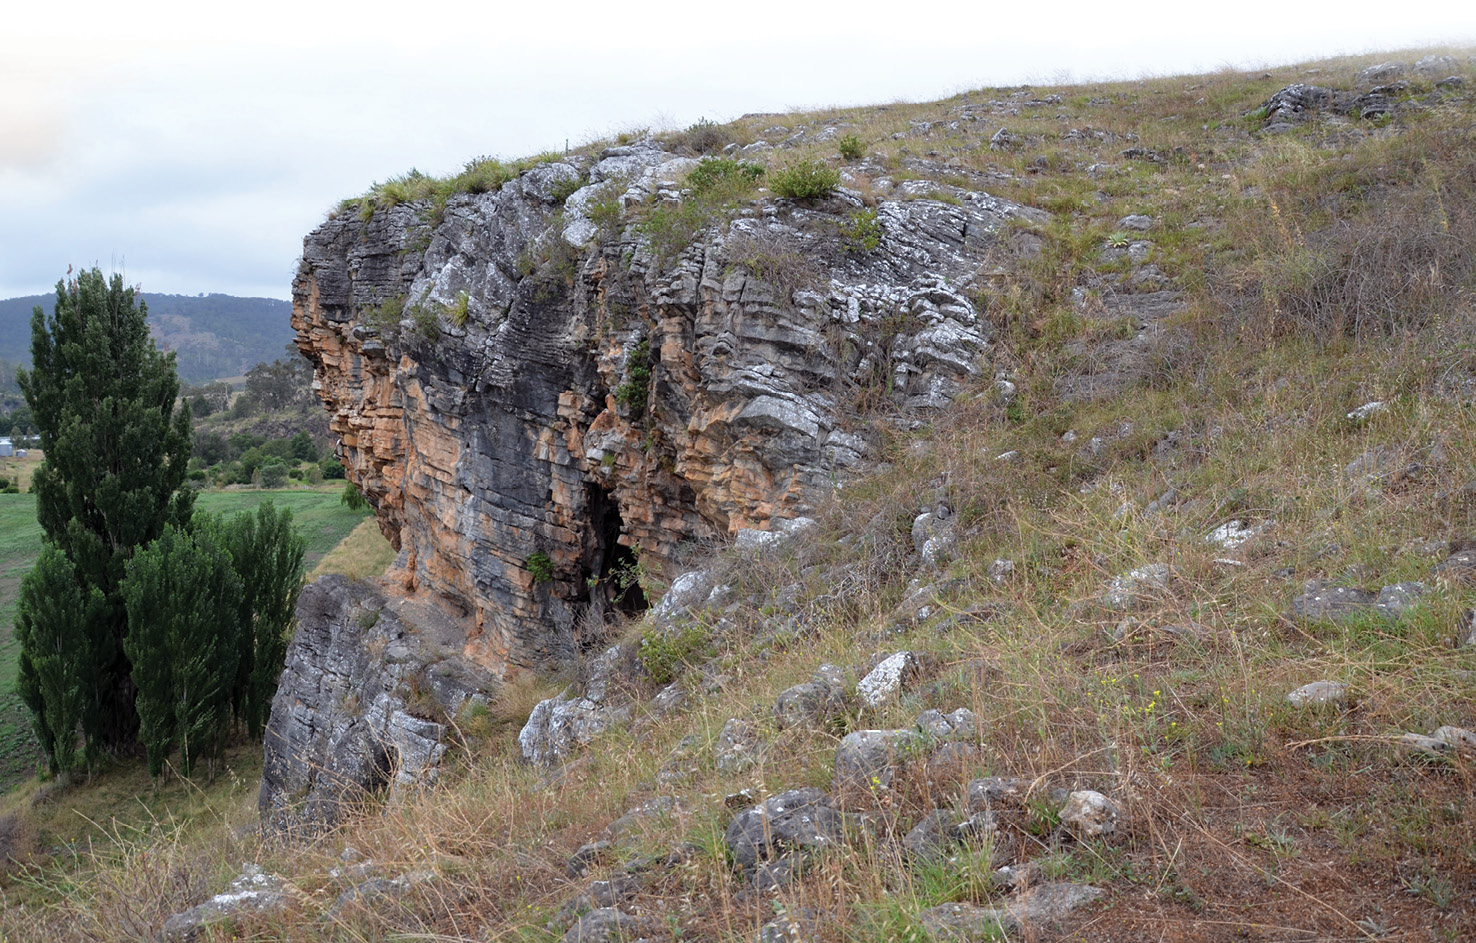 below Cloggs Cave. Fresh research at the site has transformed interpretations of this iconic site for the archaeology of Australia.